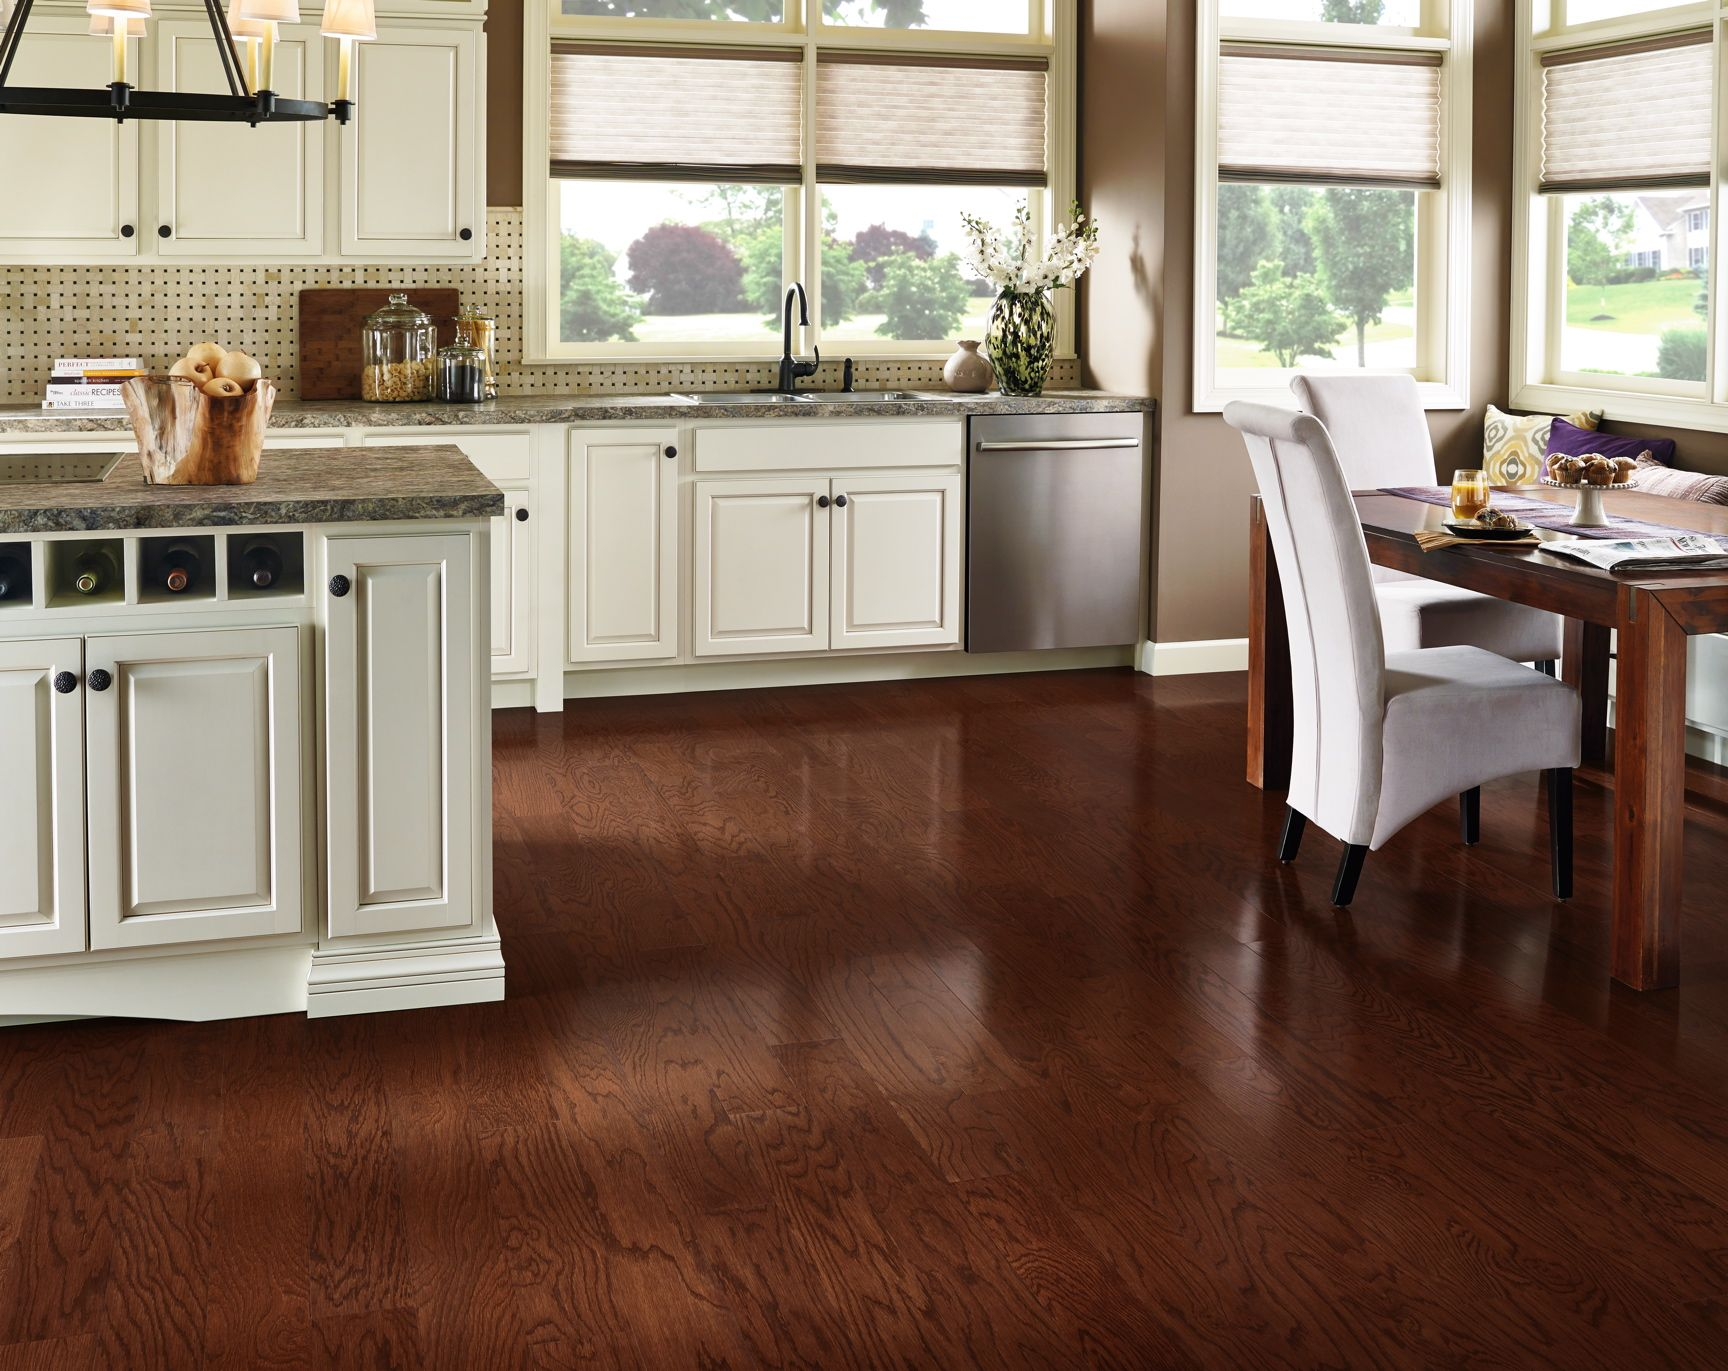 Prime harvest oak hardwood sunset west from armstrong stunning